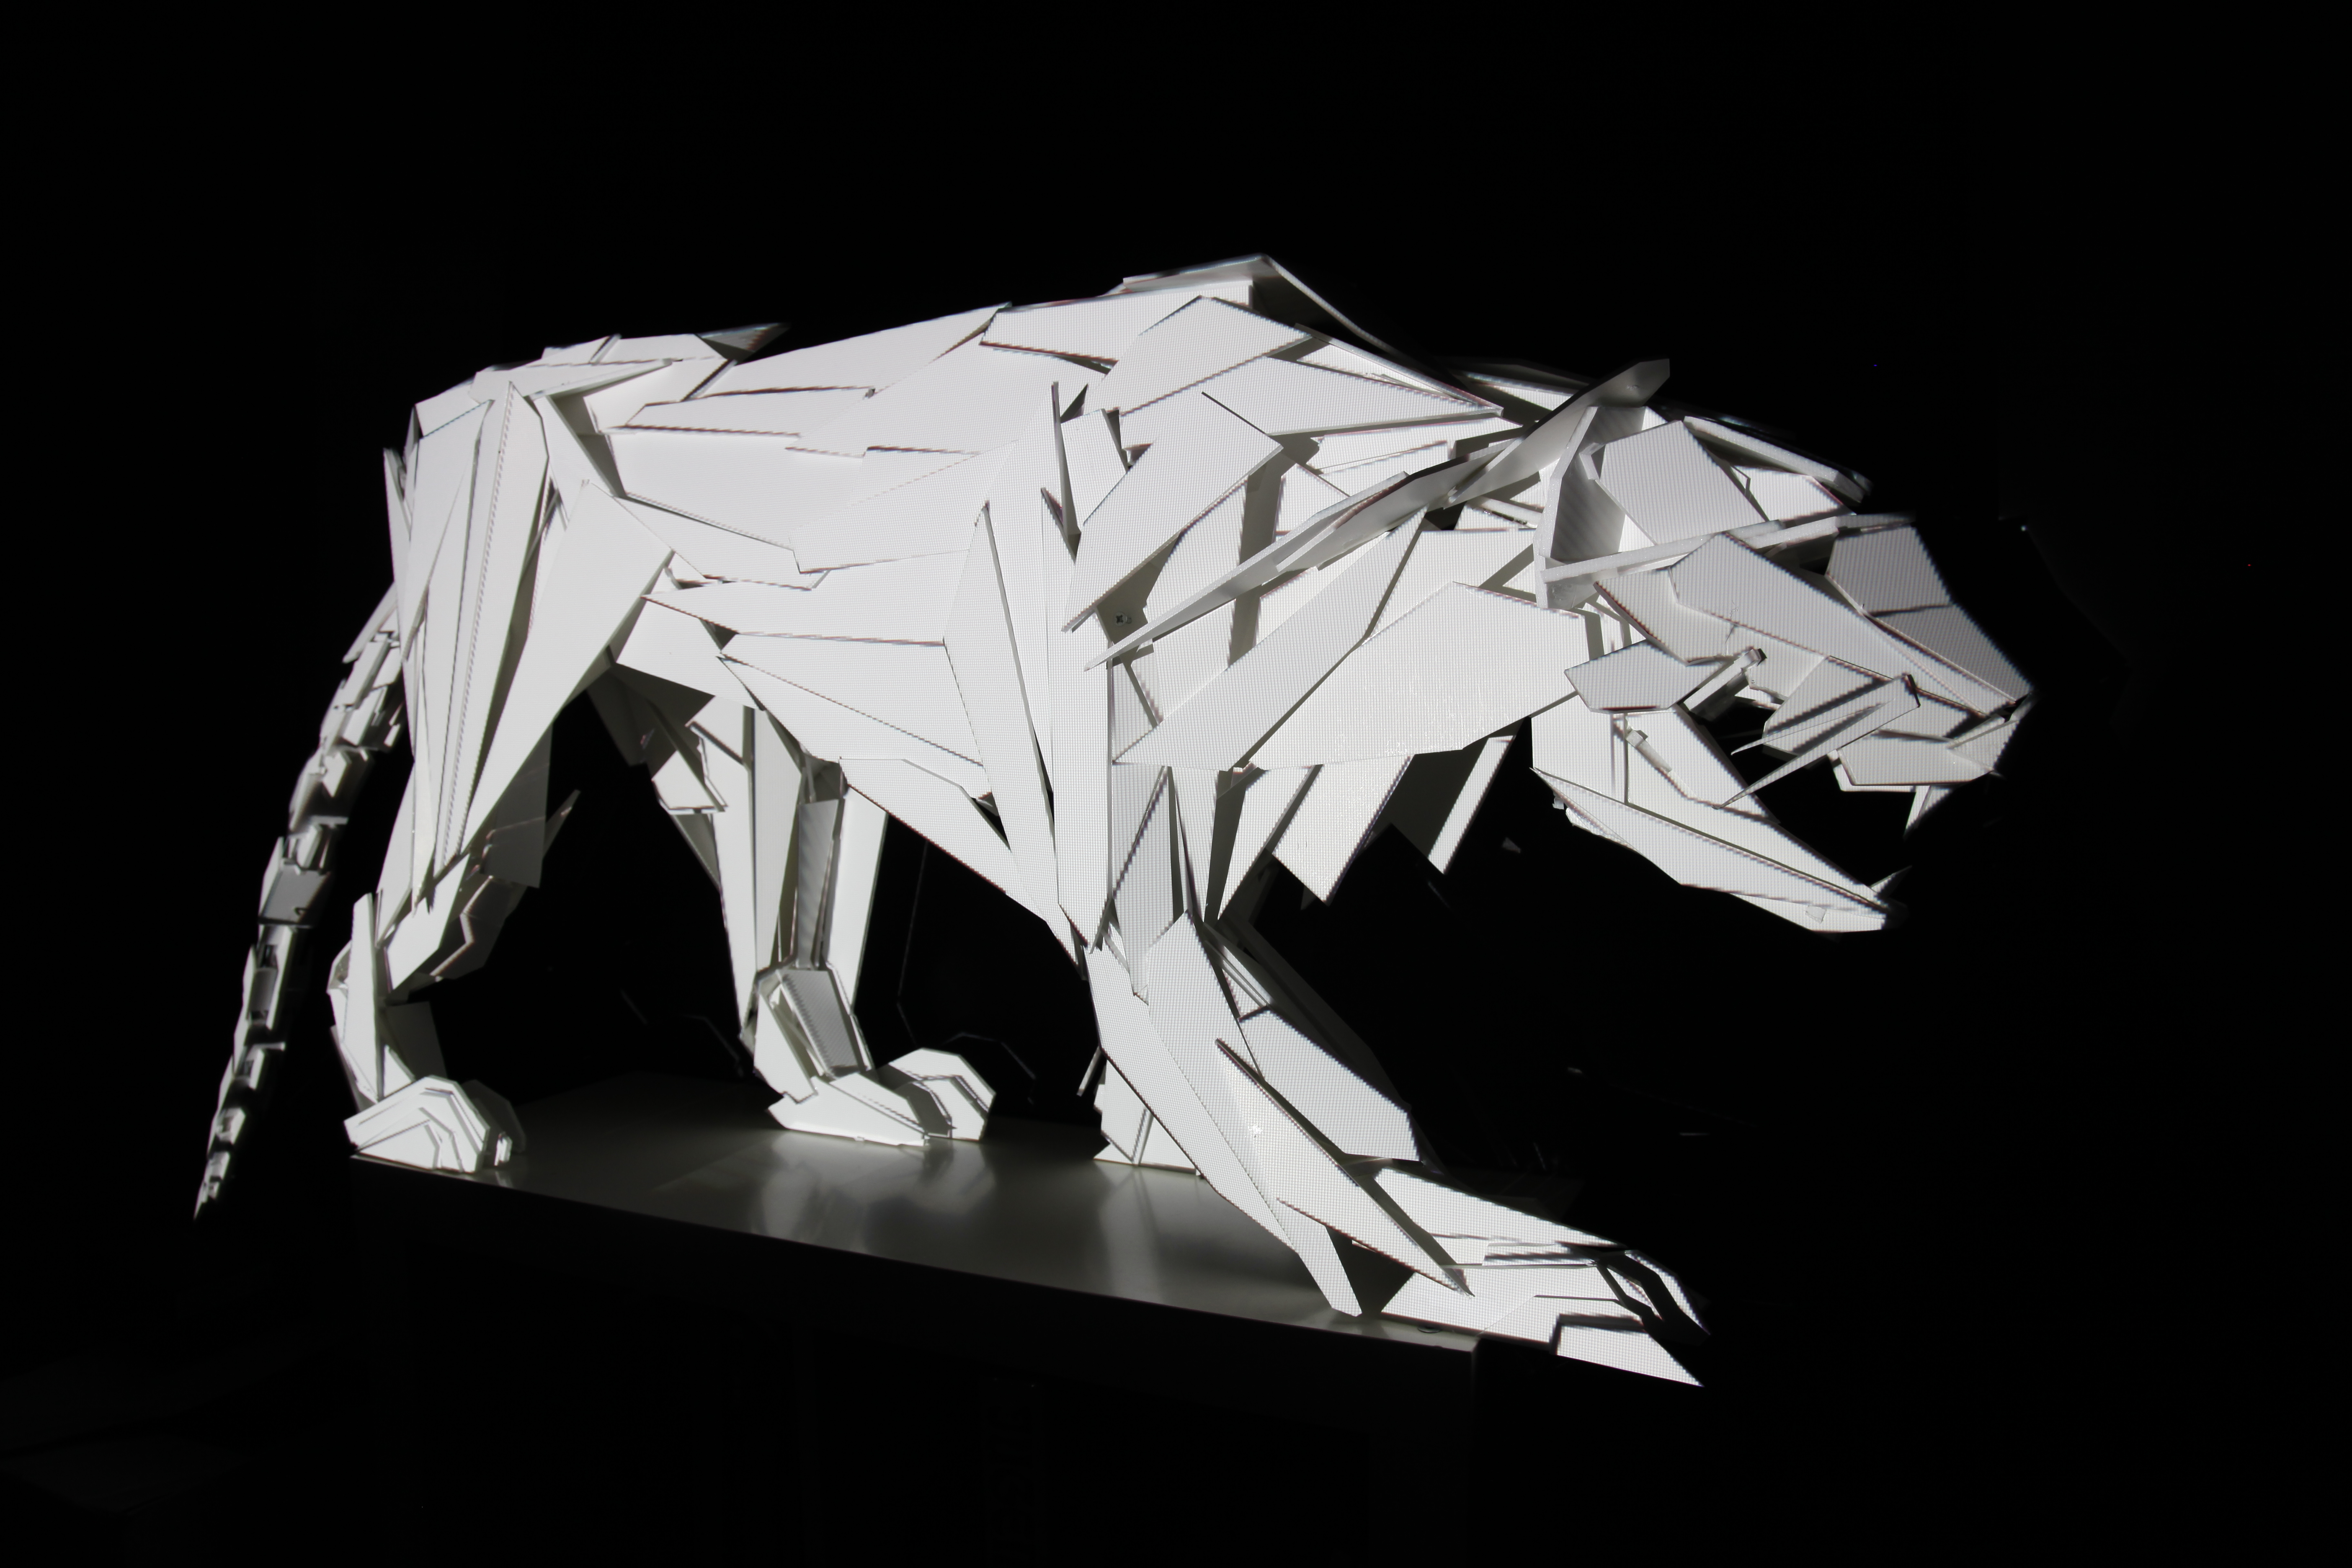 Projection Mapping On 3 Dimensional Tiger Sculpture